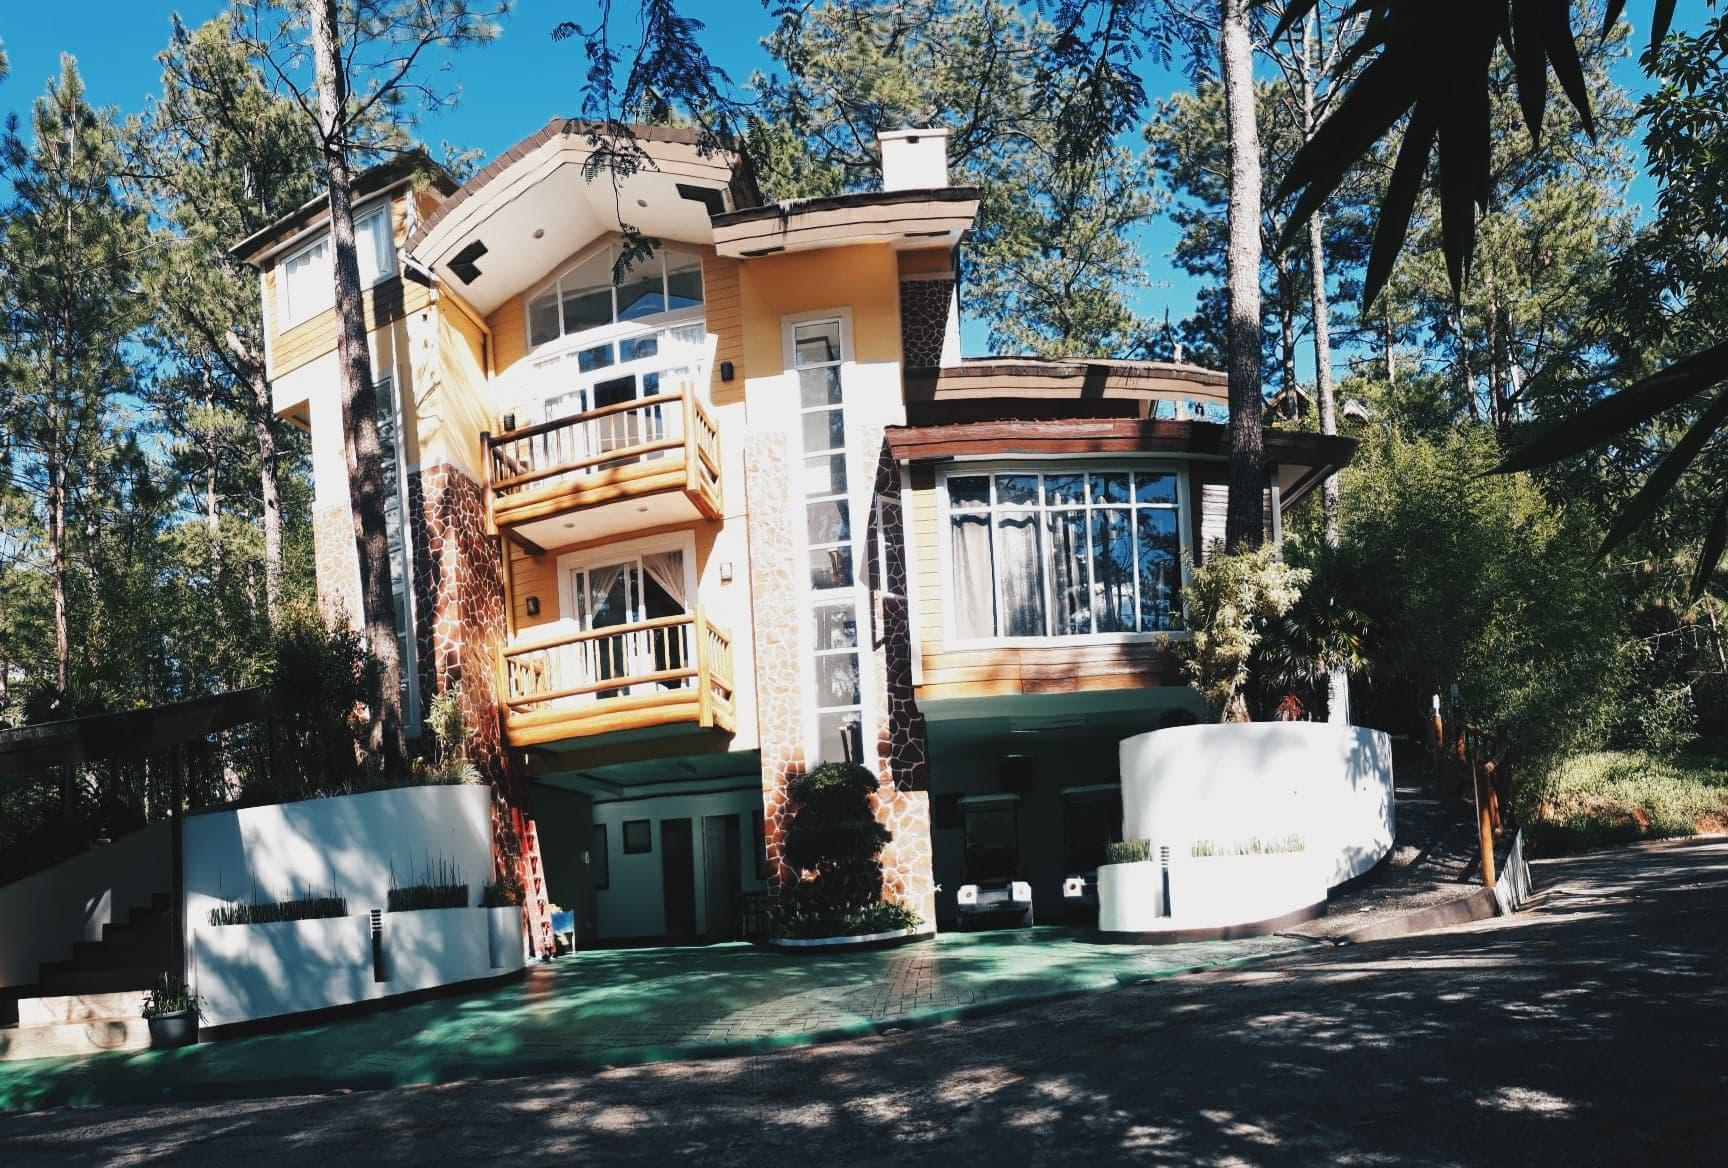 Transient House In Camp John Hay Baguio City